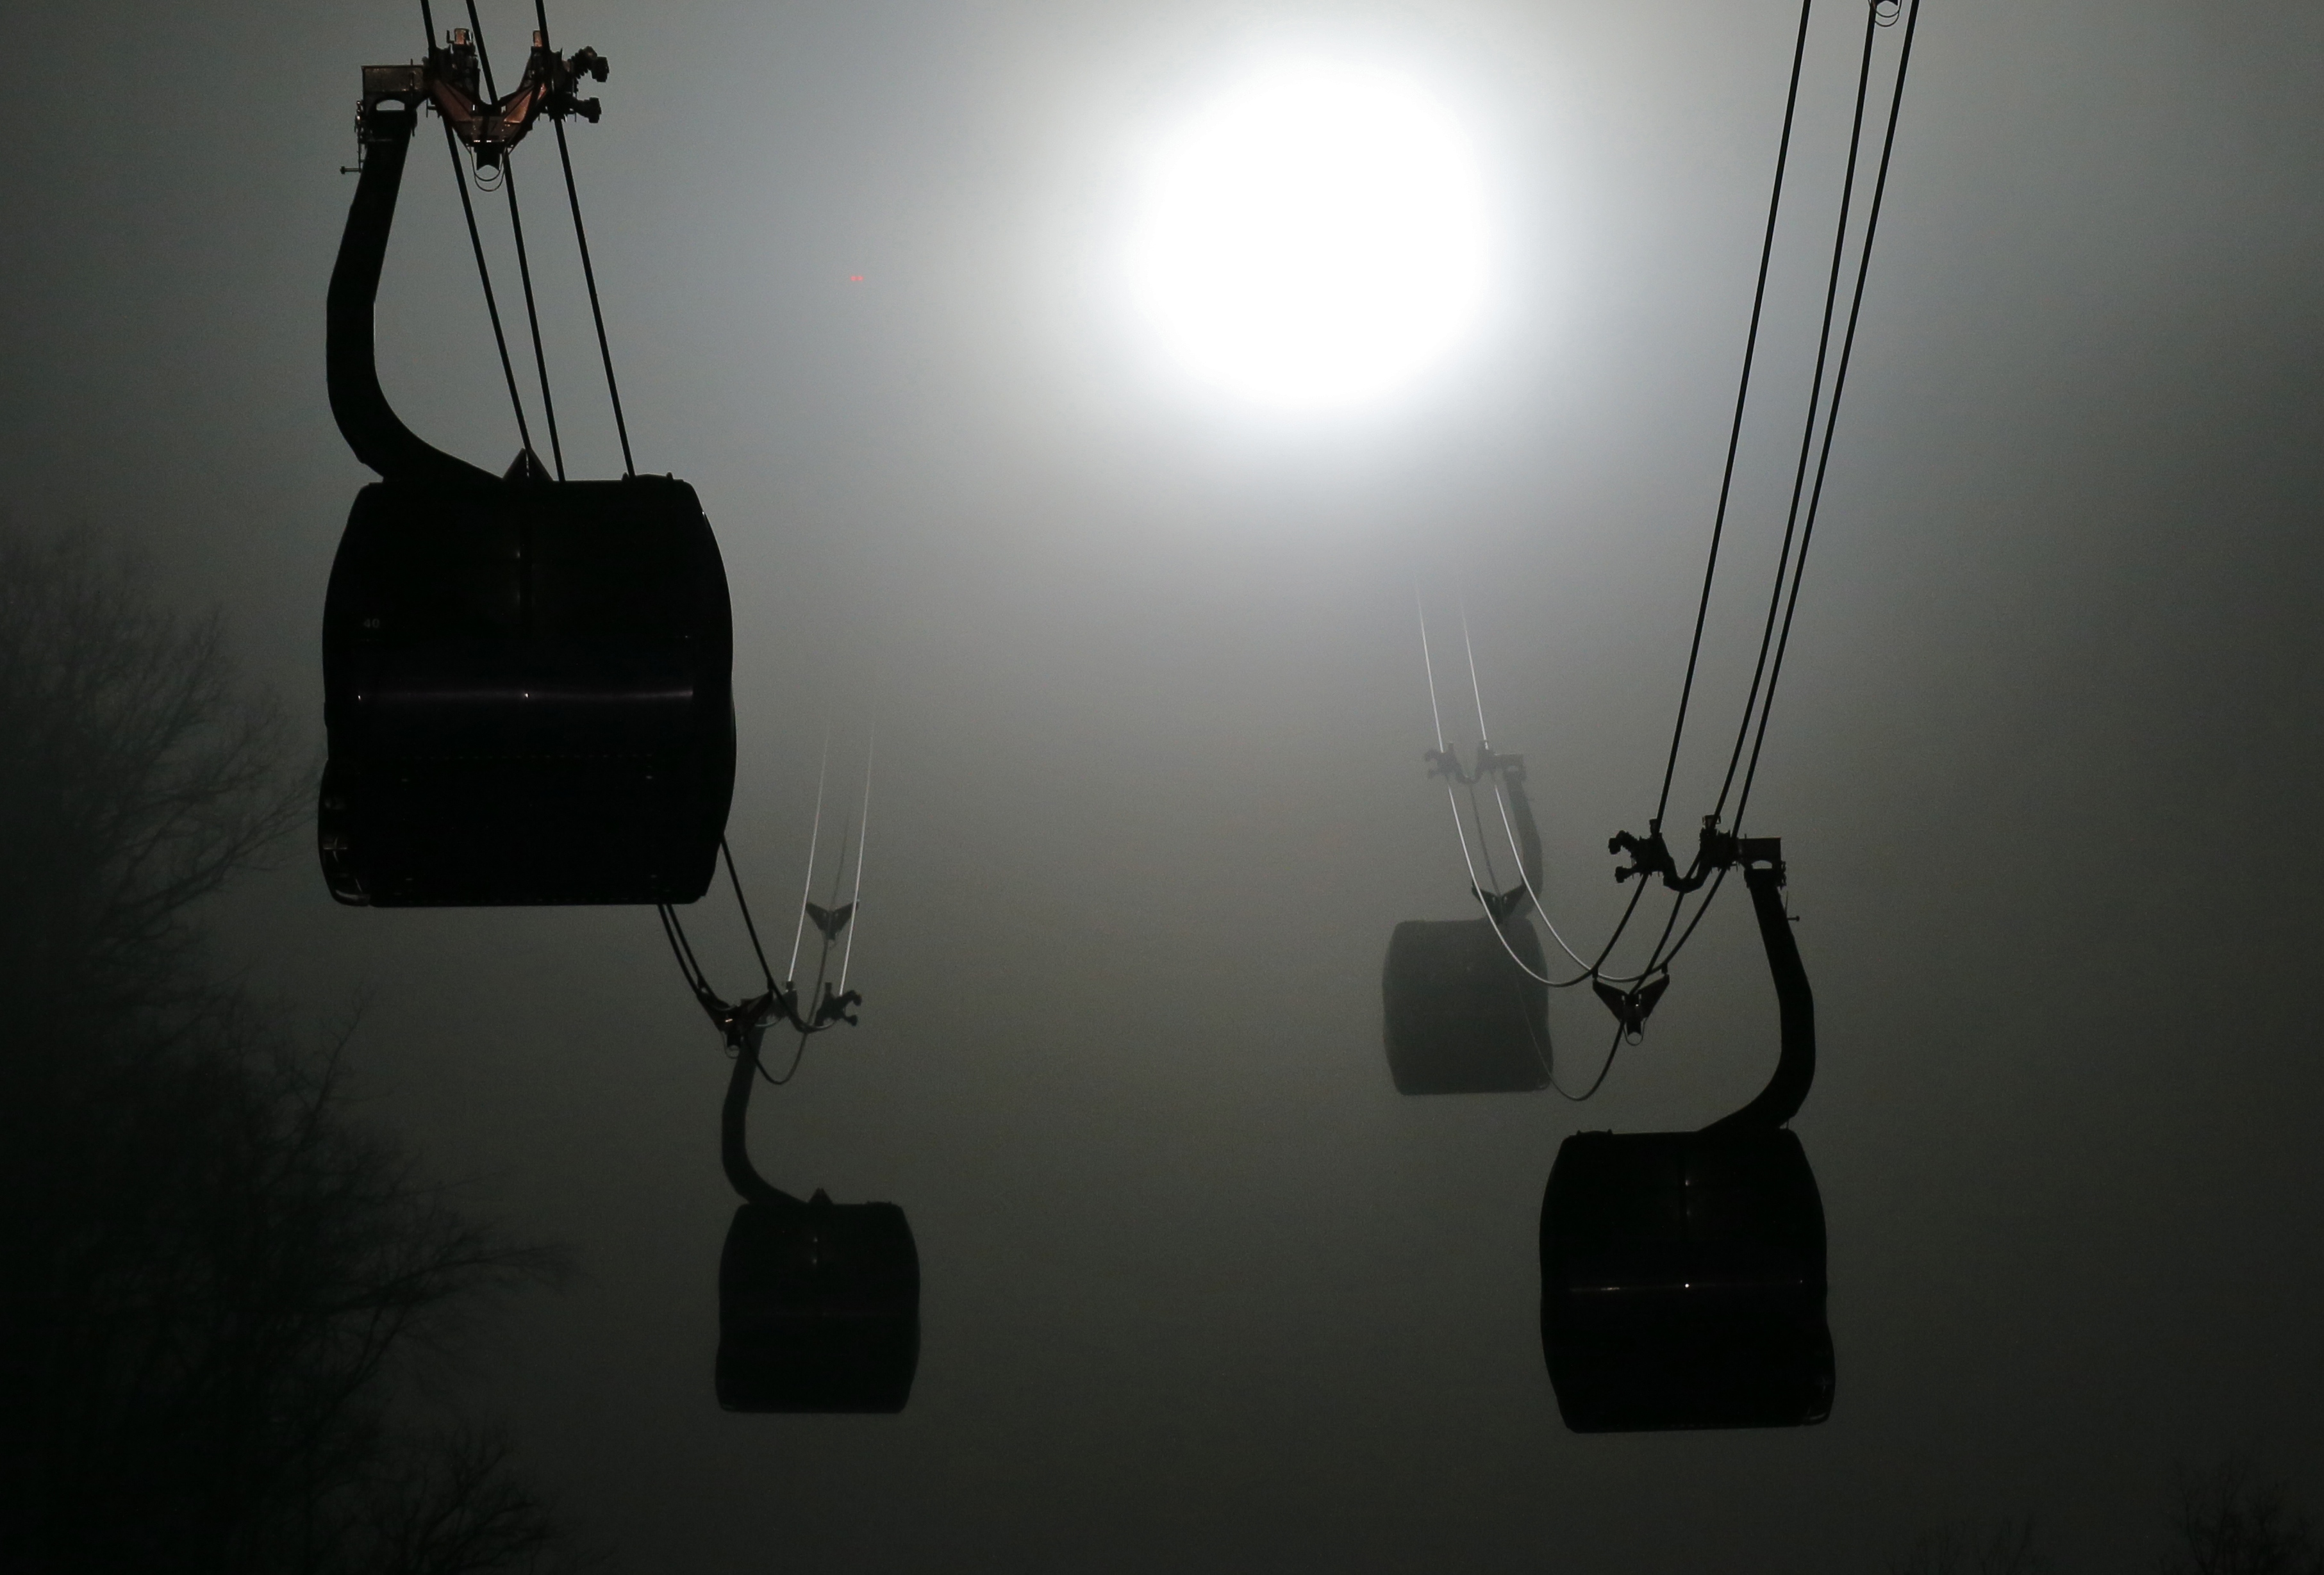 Gondolas are shrouded in fog as they travel to the Laura Cross-country Ski and biathlon venues during the 2014 Winter Olympics in Krasnaya Polyana, Russia, Sunday, Feb. 16, 2014.  (AP Photo/Dmitry Lovetsky)